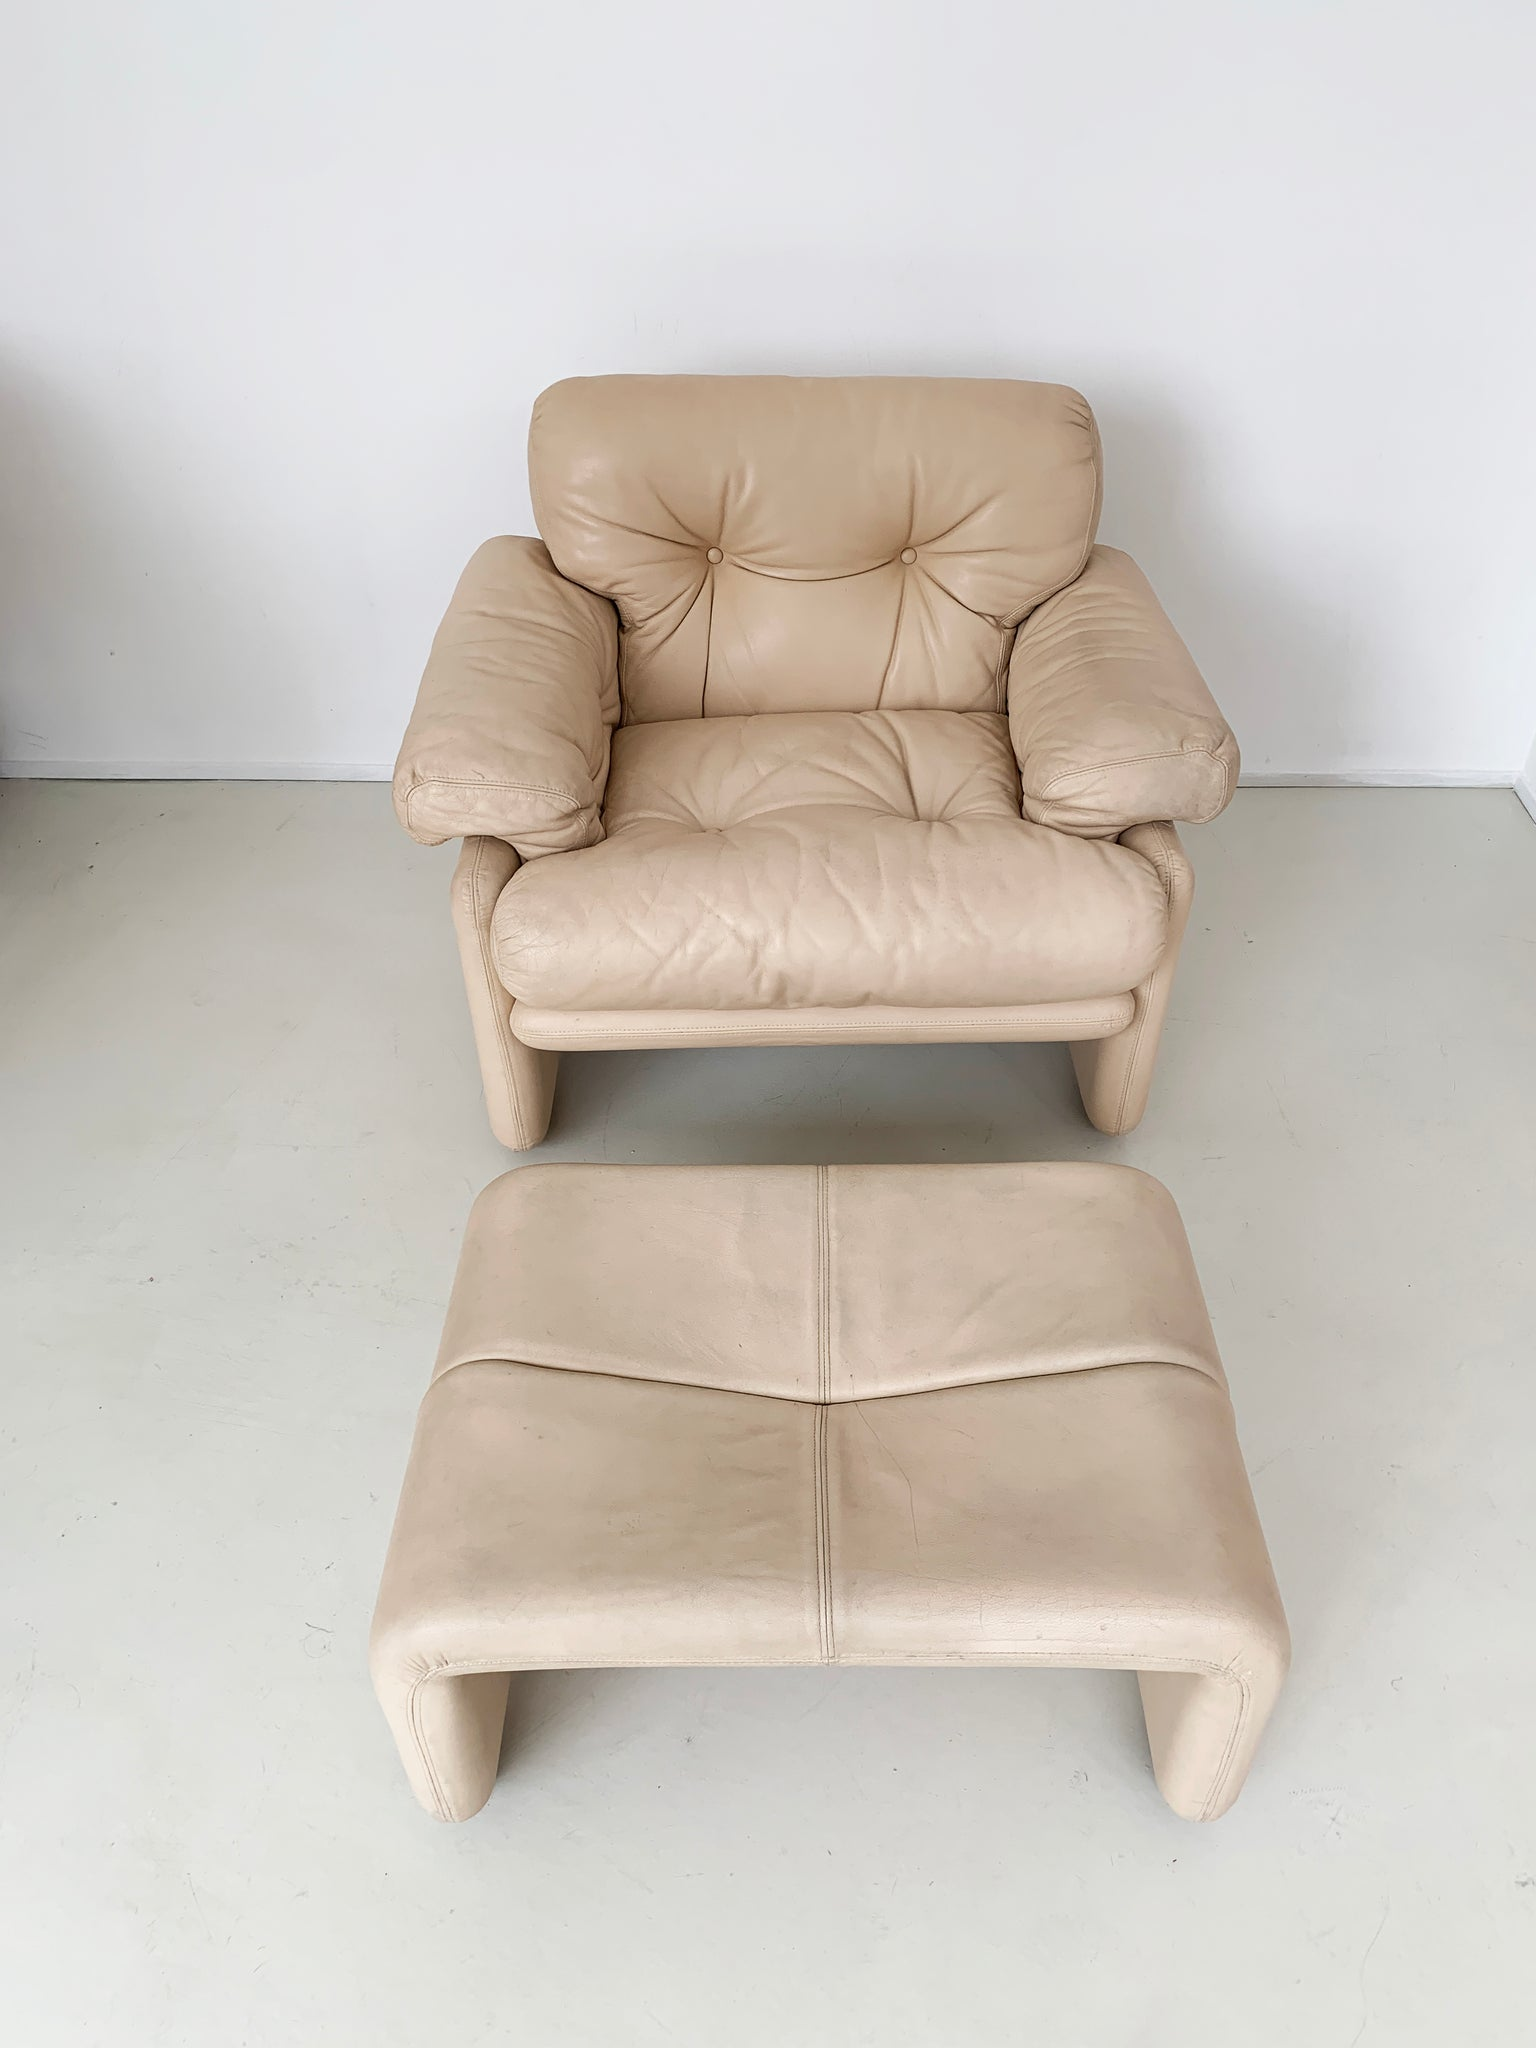 1970s Tobia Scarpa Coronado Leather Club Chair and Ottoman for B&B Italia